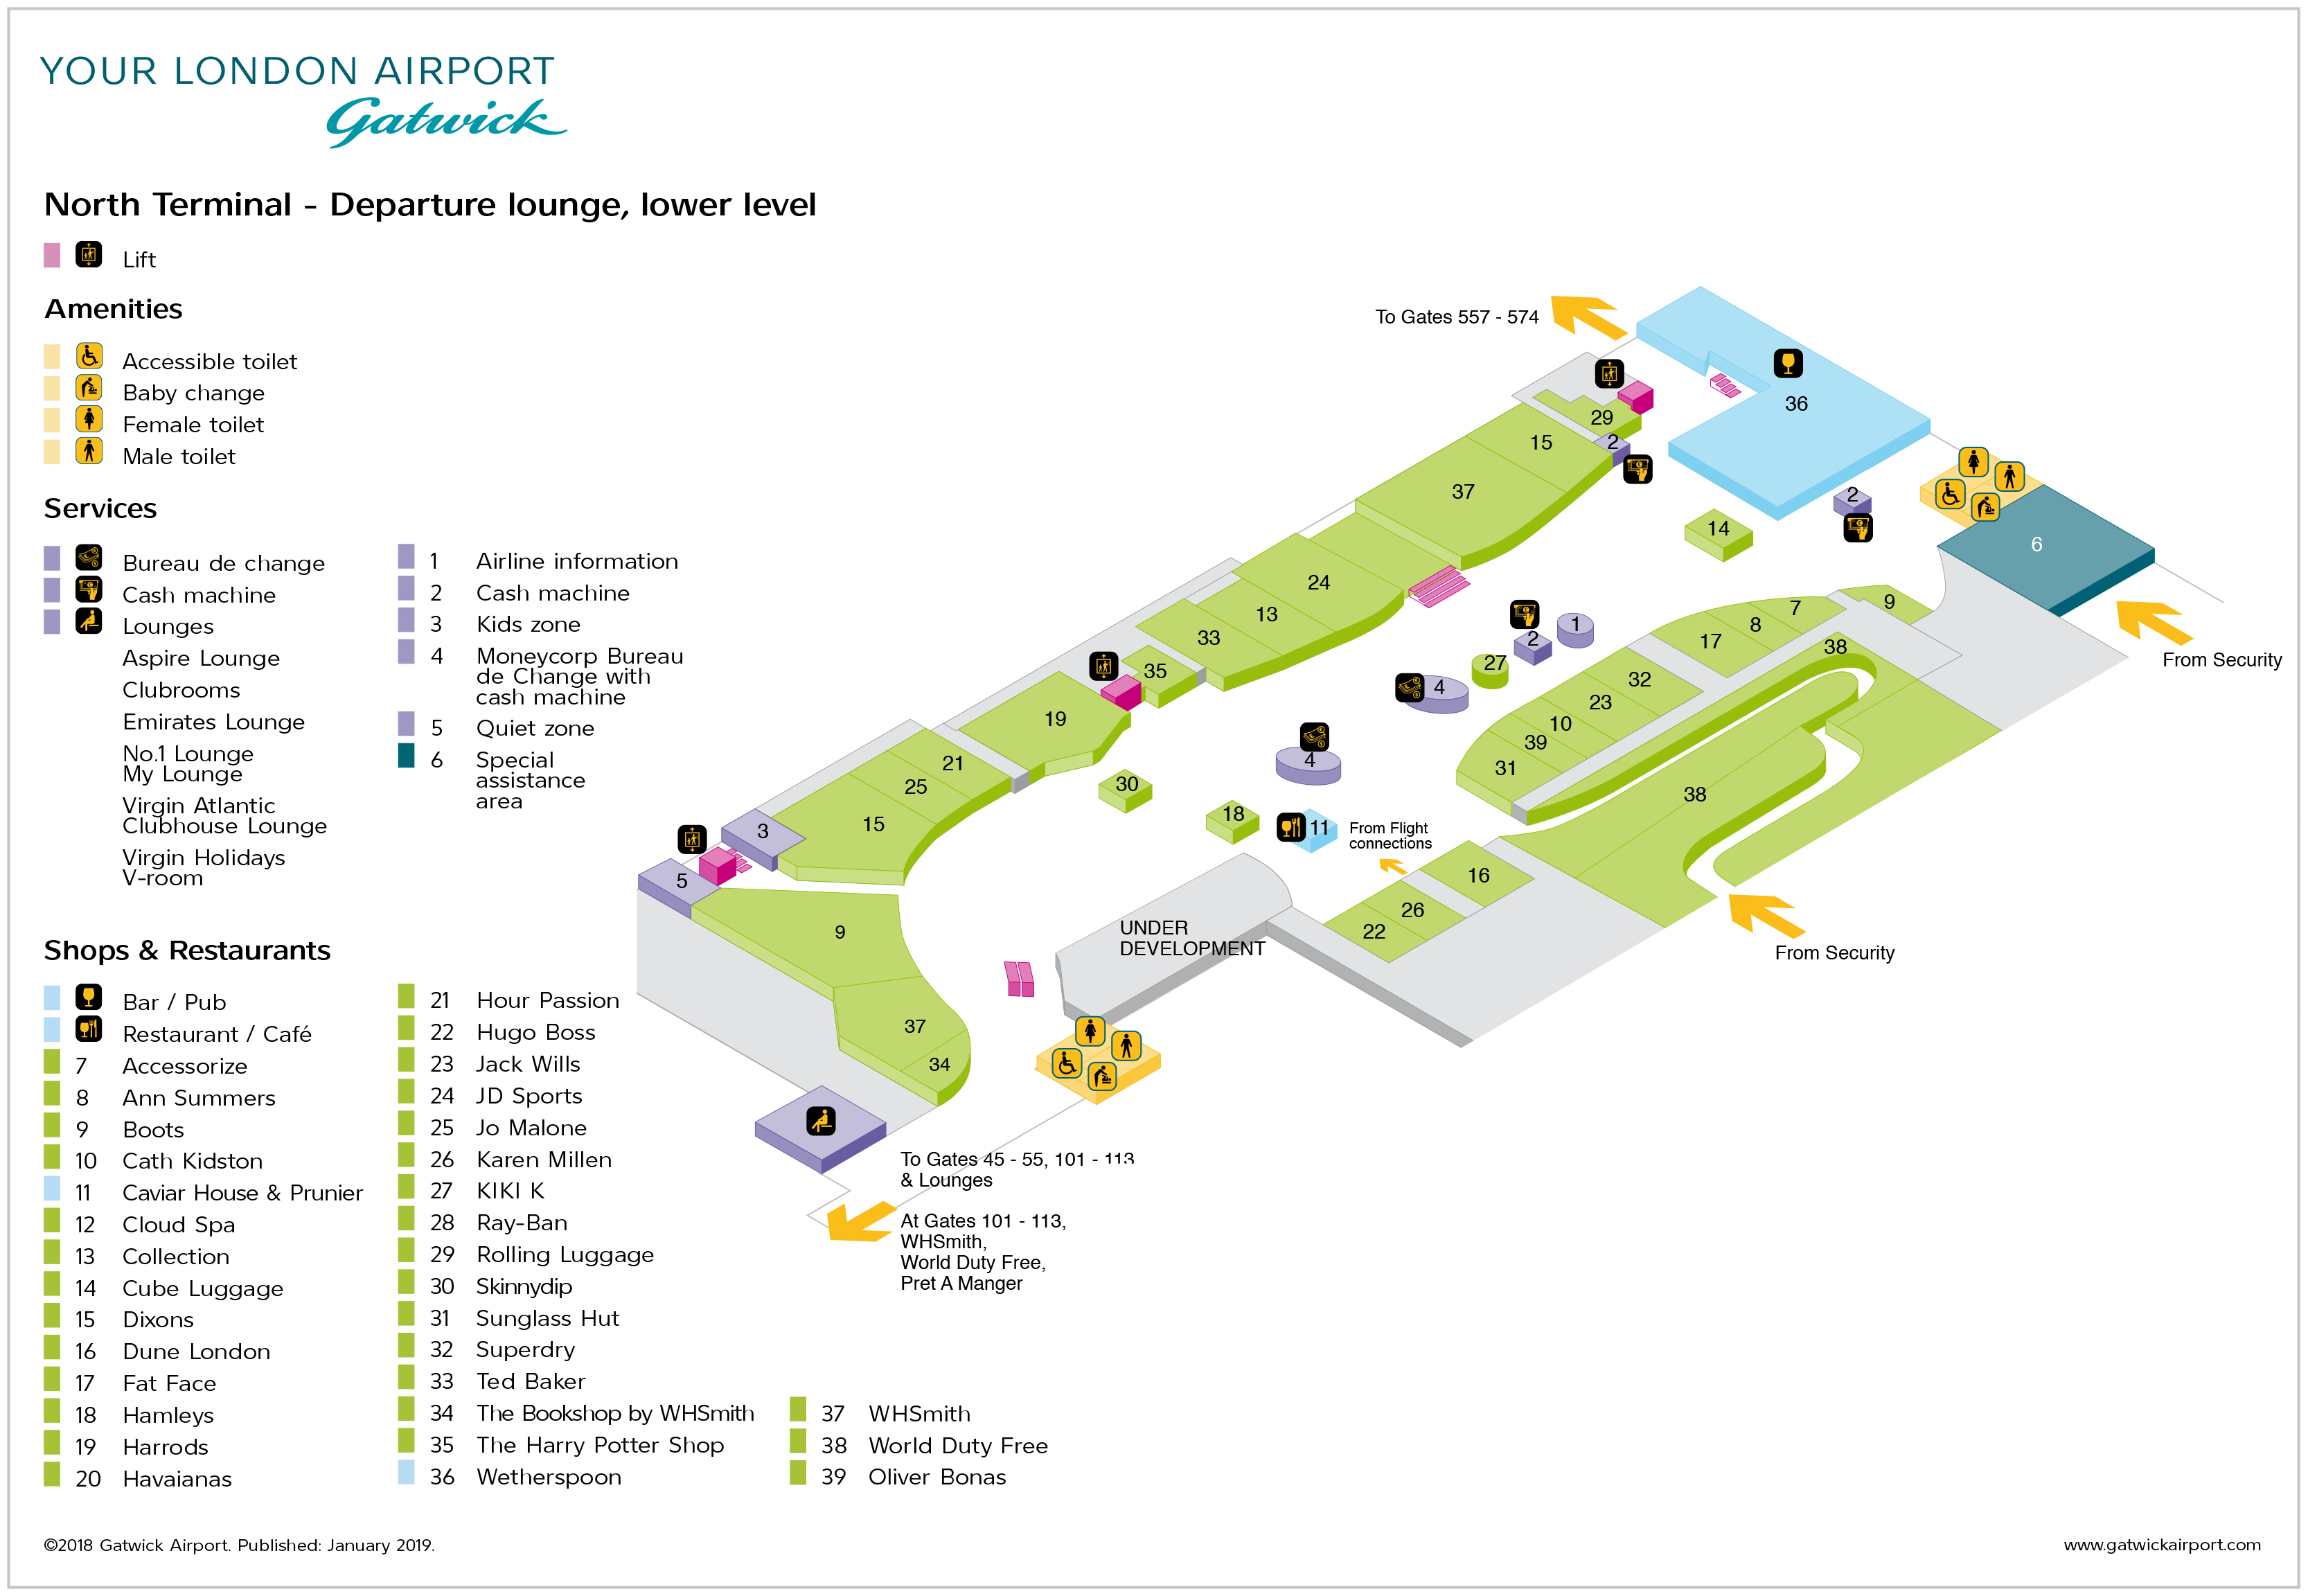 Gatwick Airport Map (LGW) - Printable Terminal Maps, Shops ... on boston airport map, ho chi minh city airport map, new york newark airport map, goa airport map, glasgow railway station map, london airport map, east midlands airport map, glasgow airport shops, barcelona airport map, walker field airport map, dubai airport map, glasgow university map, heathrow airport map, dublin airport map, cape town airport map, glasgow international airport mt, bordeaux airport map, munich airport map, hamburg airport map, warsaw airport map,